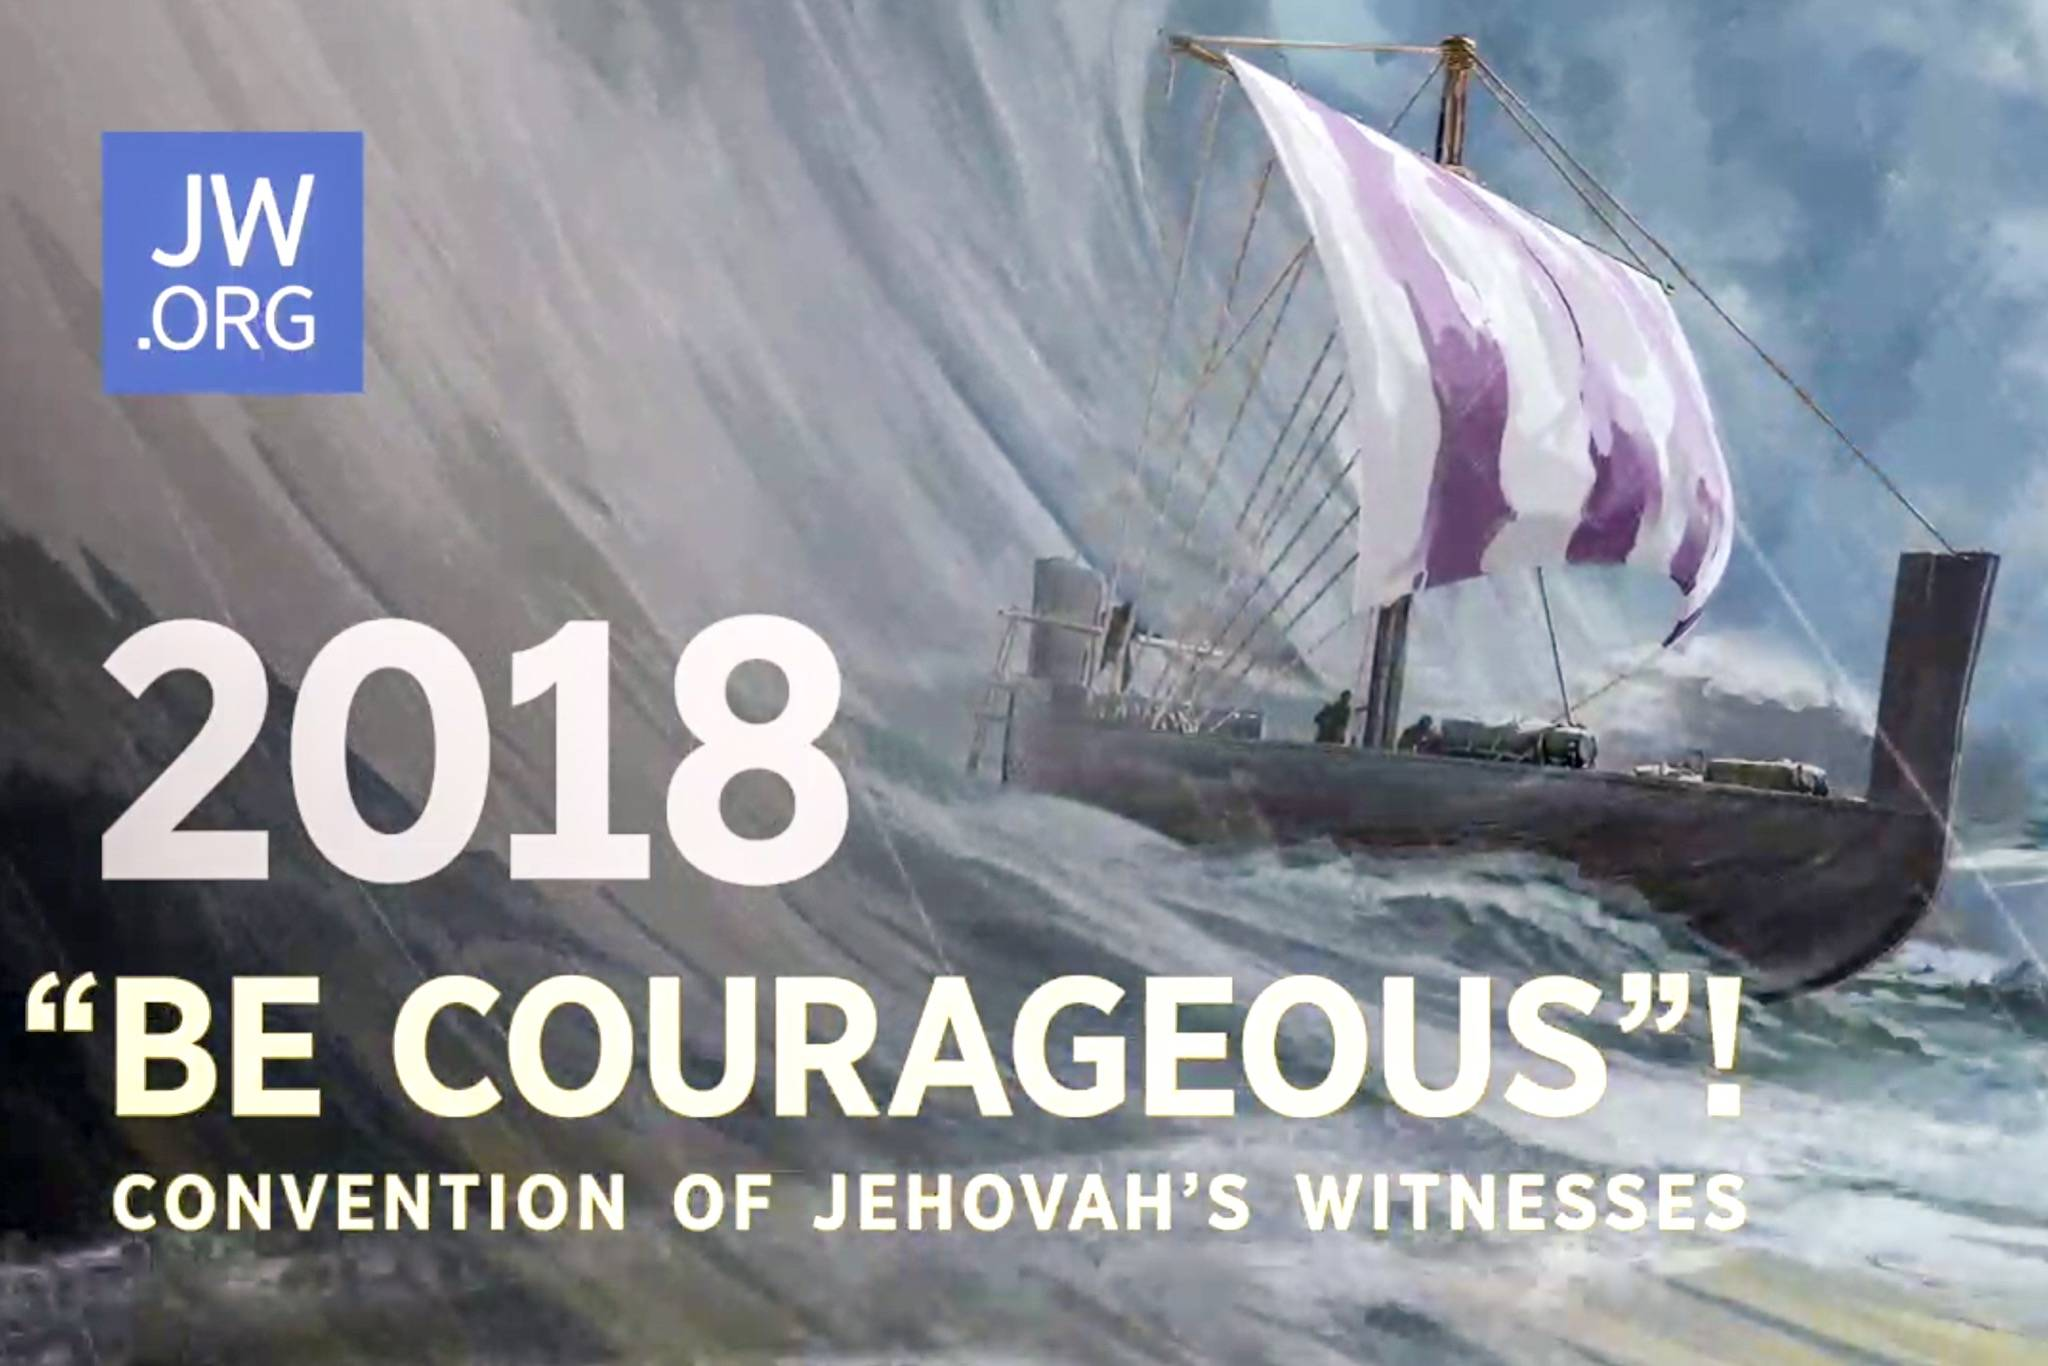 Thousands gather at Ota for Jehovah's Witnesses' 'Be Courageous!' Regional Convention